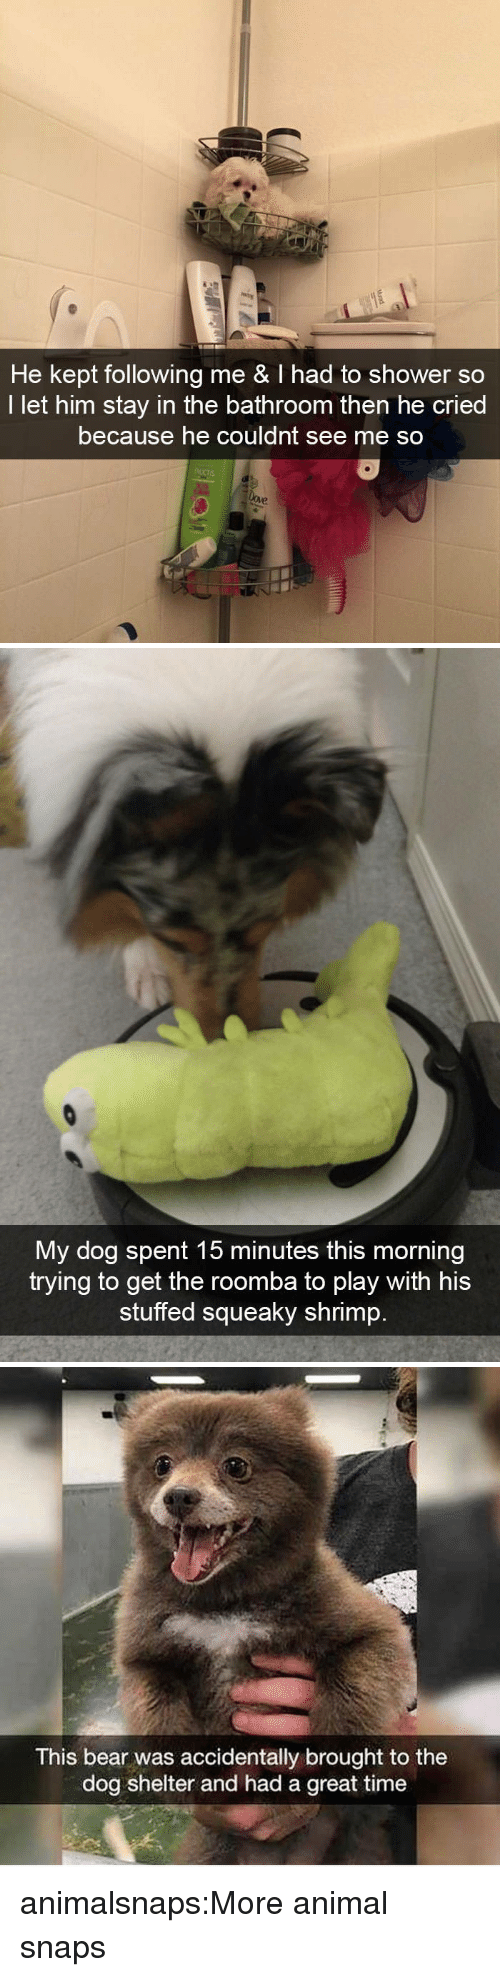 Shower, Target, and Tumblr: He kept following me & I had to shower so  I let him stay in the bathroom then he cried  because he couldnt see me so   My dog spent 15 minutes this morning  trying to get the roomba to plav with his  stuffed squeaky shrimp   This bear was accidentally brought to the  dog shelter and had a great time animalsnaps:More animal snaps